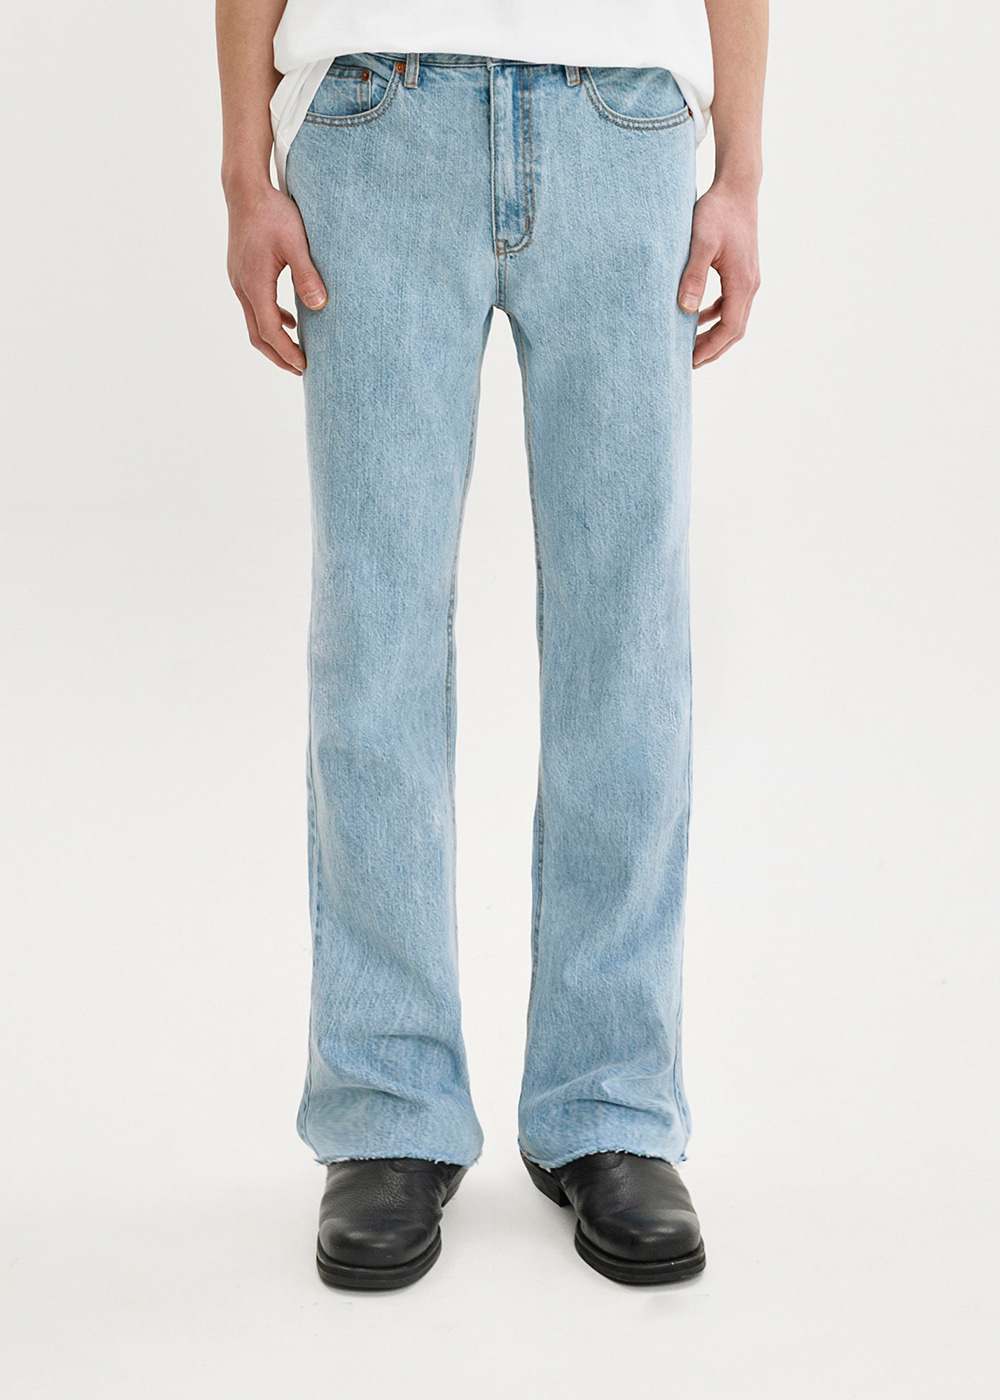 BOOTS CUT CROP JEANS JS [LIGHT BLUE]